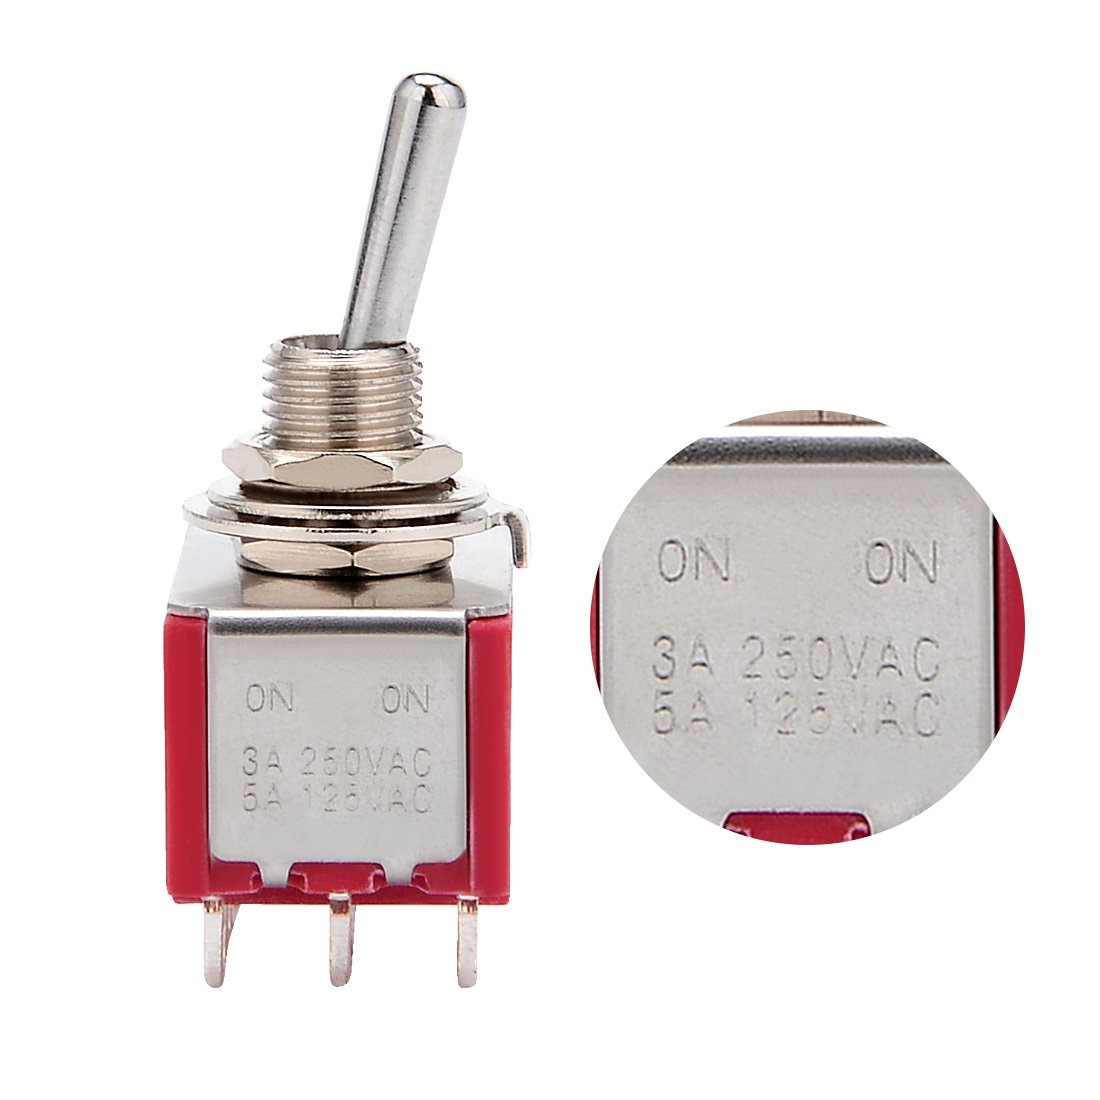 uxcell 5Pcs AC 125V//5A 250V//3A ON//ON 2 Positions 12 Terminals 4PDT Toggle Switch